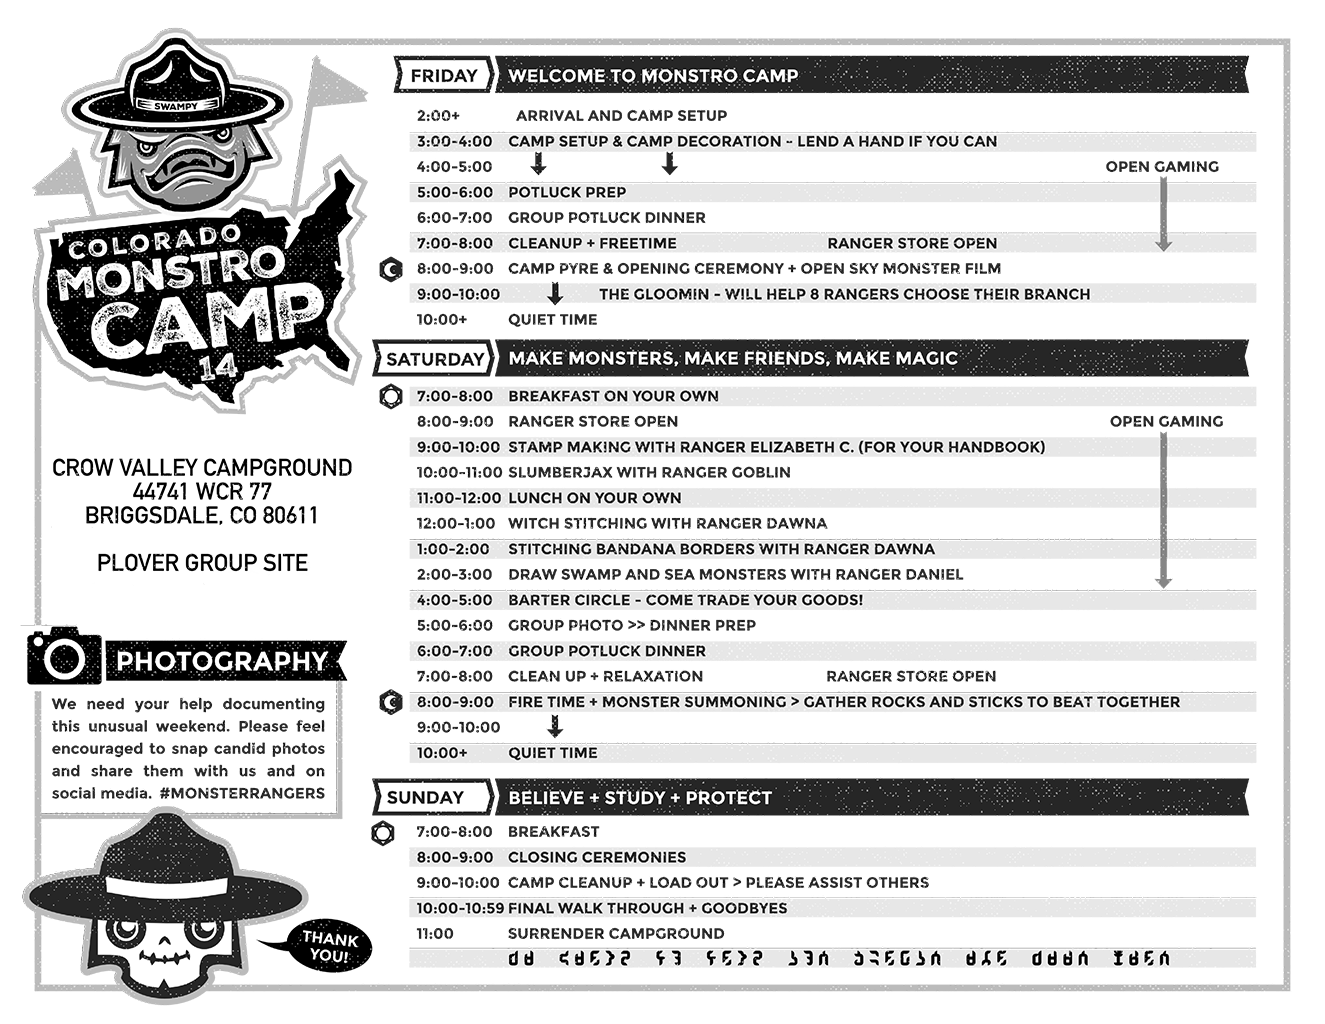 monstro-camp-schedule-colorado-2018f.png